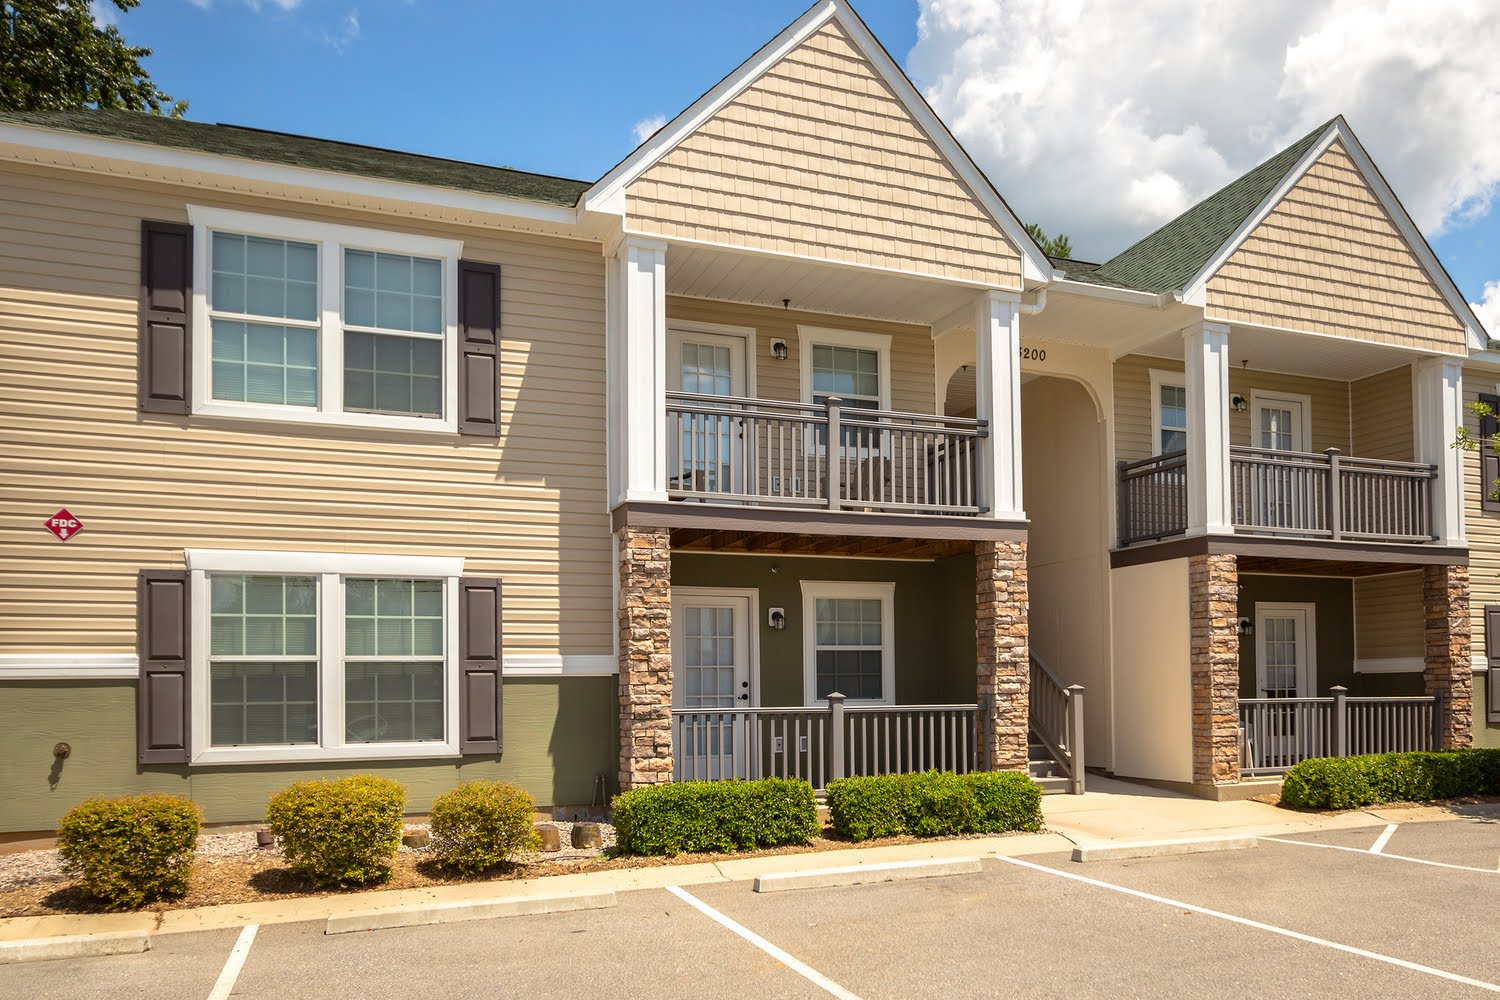 New London Apartments For Rent In Aiken South Carolina